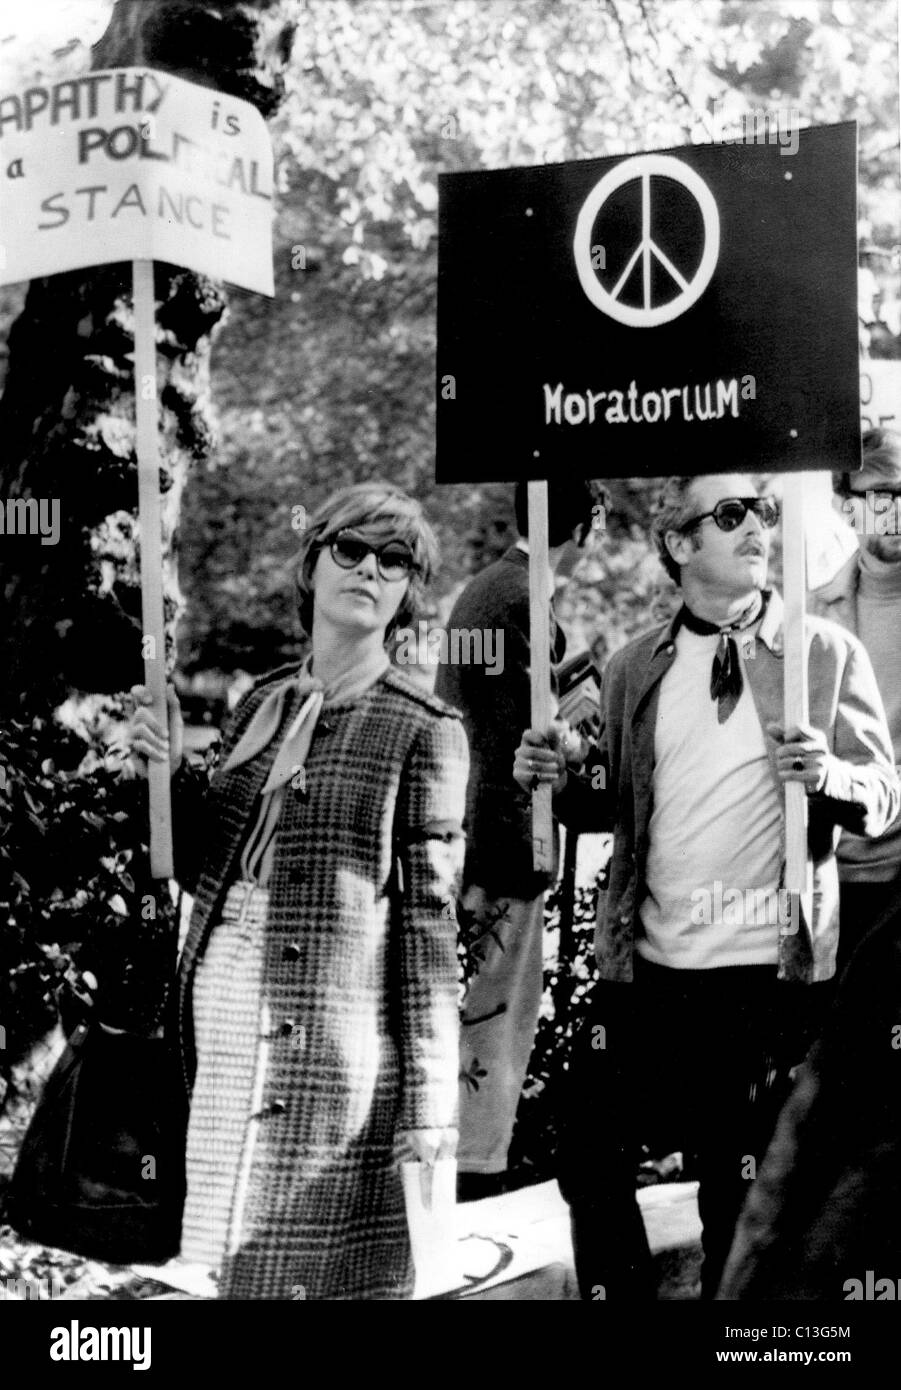 JOANNE WOODWARD and PAUL NEWMAN protest the Vietnam war, 1969 - Stock Image